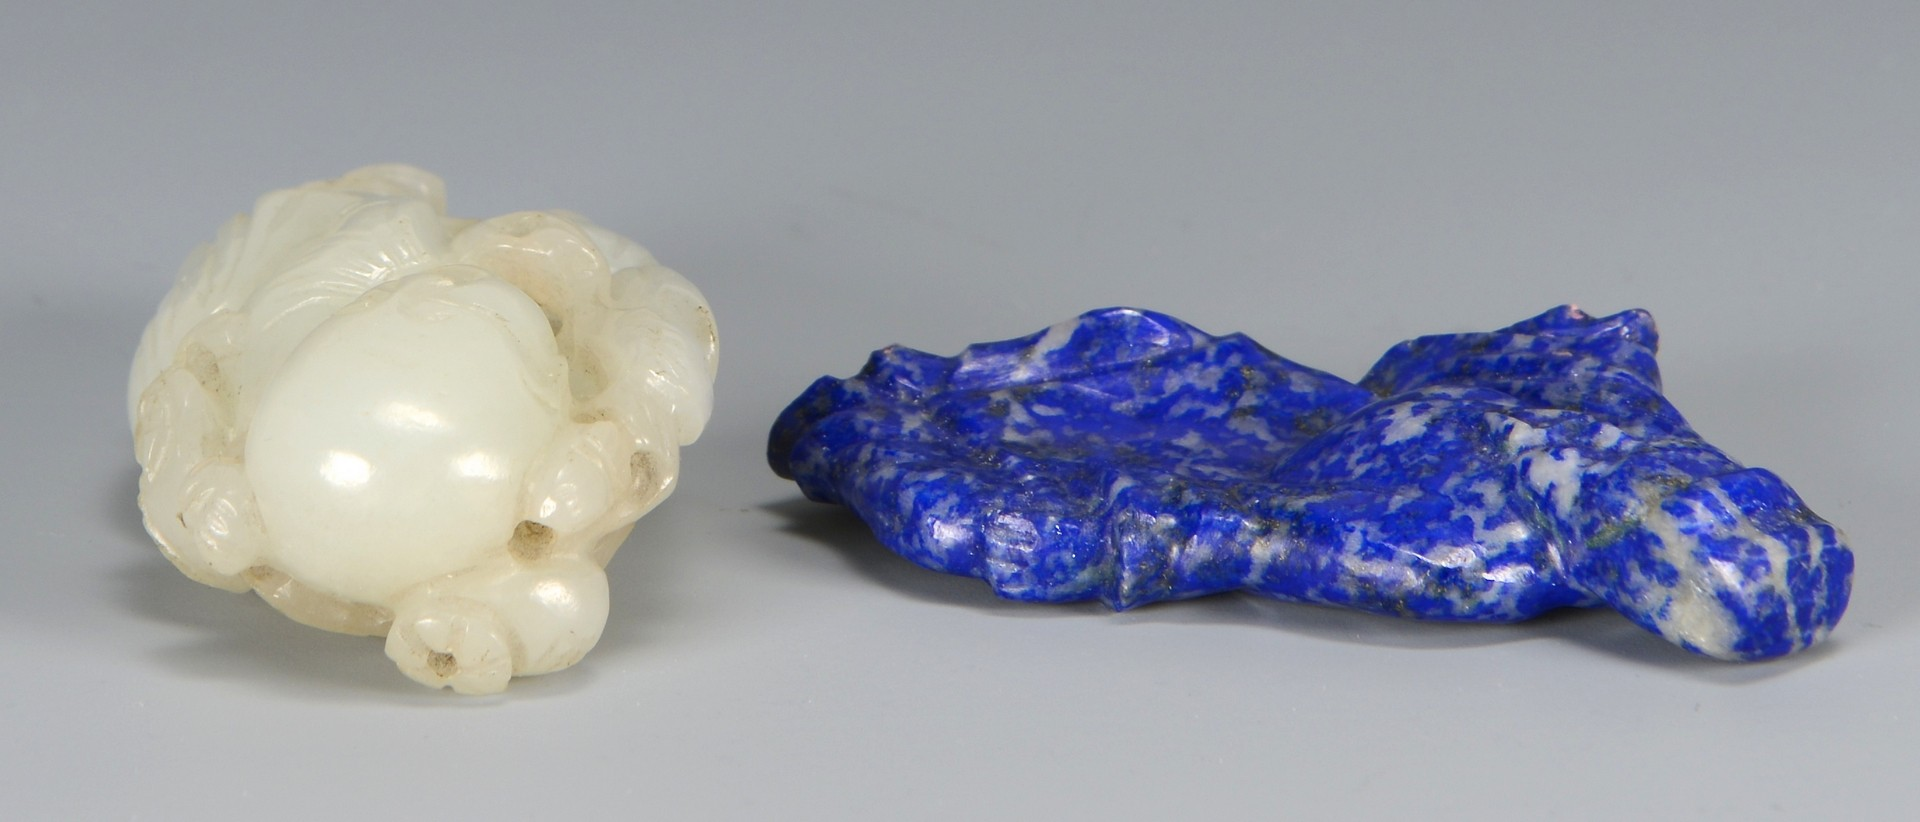 Lot 3594147: White Jade and Lapis Carved Figures